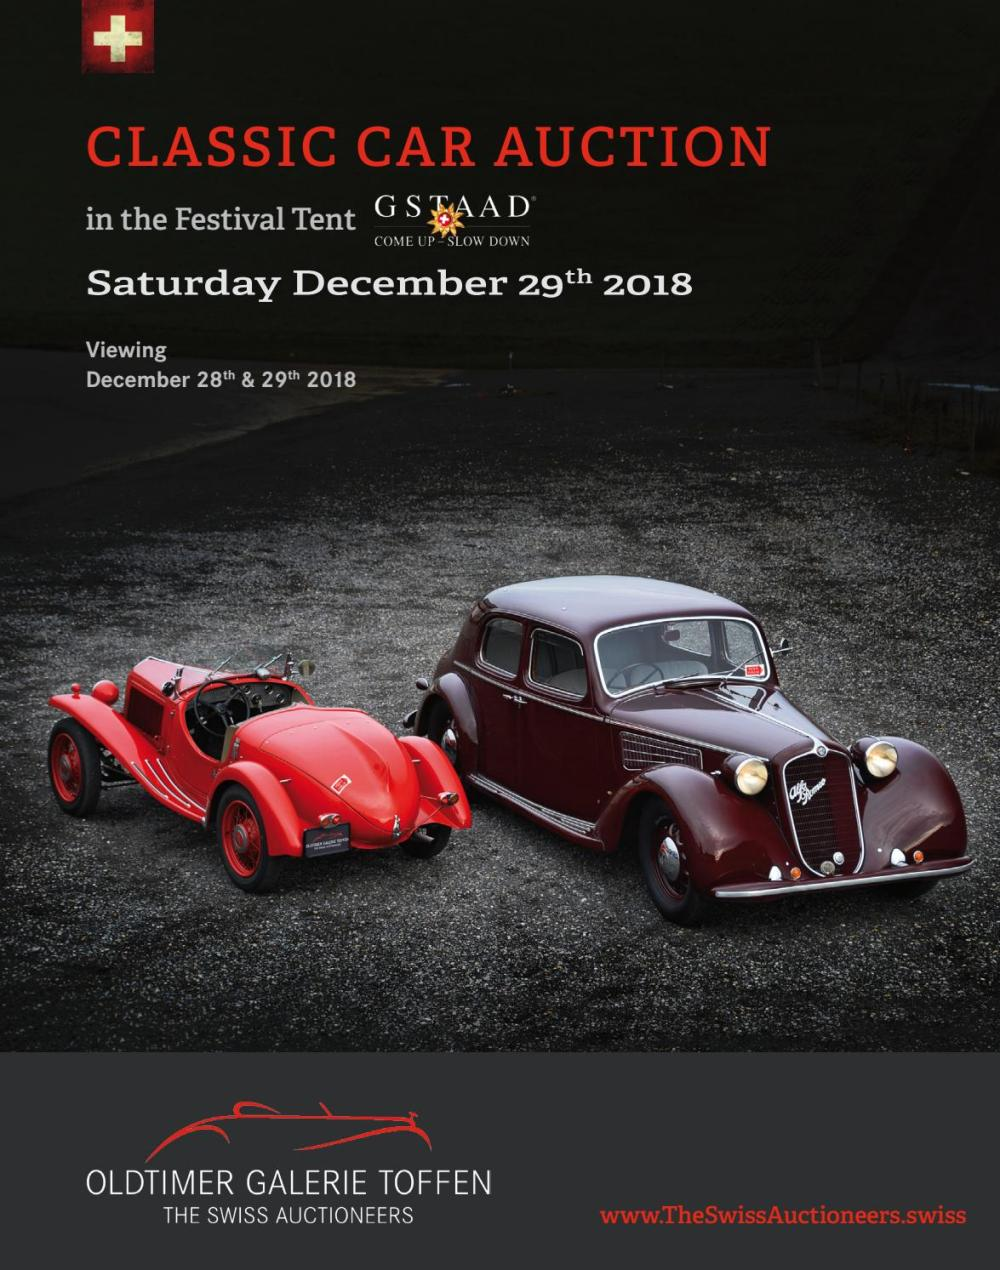 medium resolution of gstaad classic car auction december 29th 2018